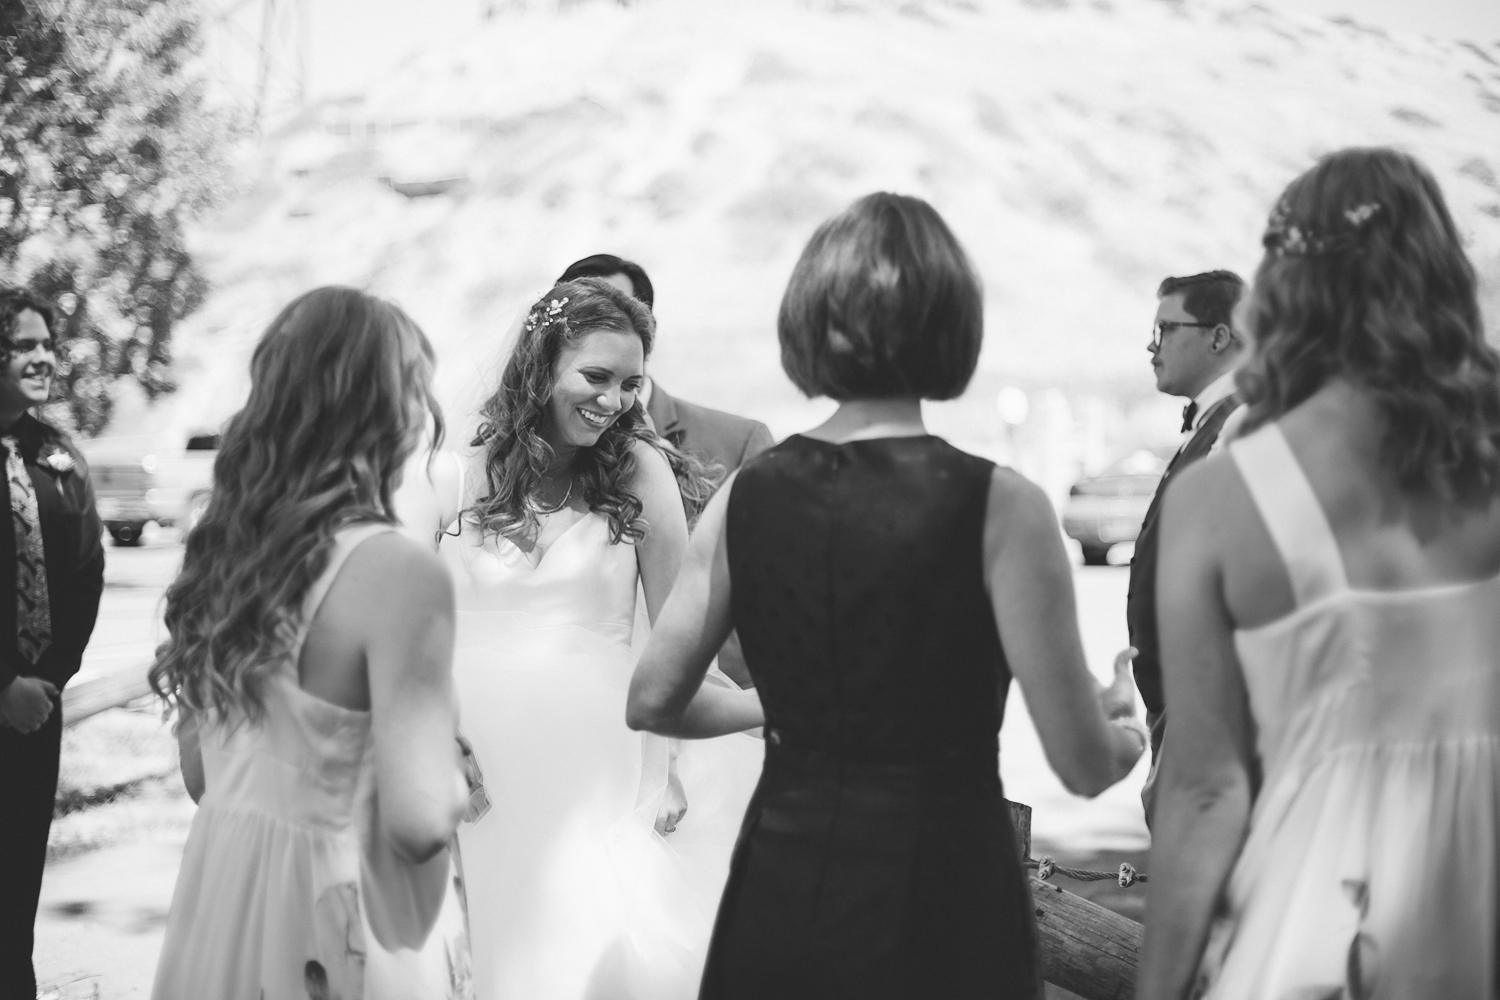 lethbridge-wedding-photographer-love-and-be-loved-photography-dan-tynnea-picture-image-photo-90.jpg